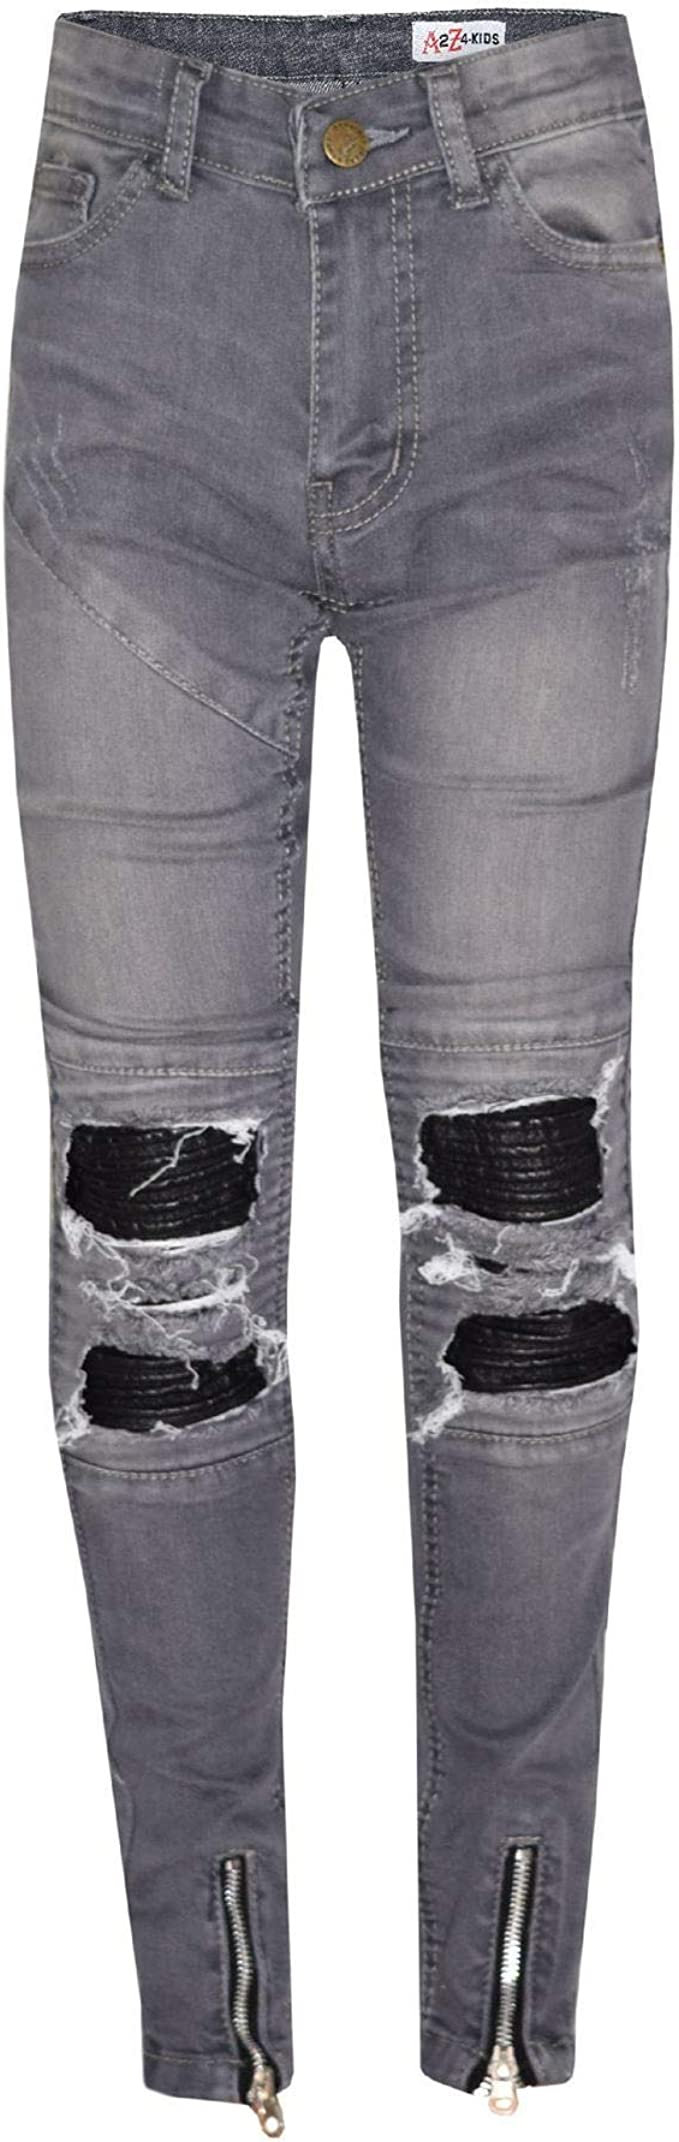 Boys Stretchy Jeans Kids Jeggings Ripped Skinny Pants Trousers Age 5-12 Years